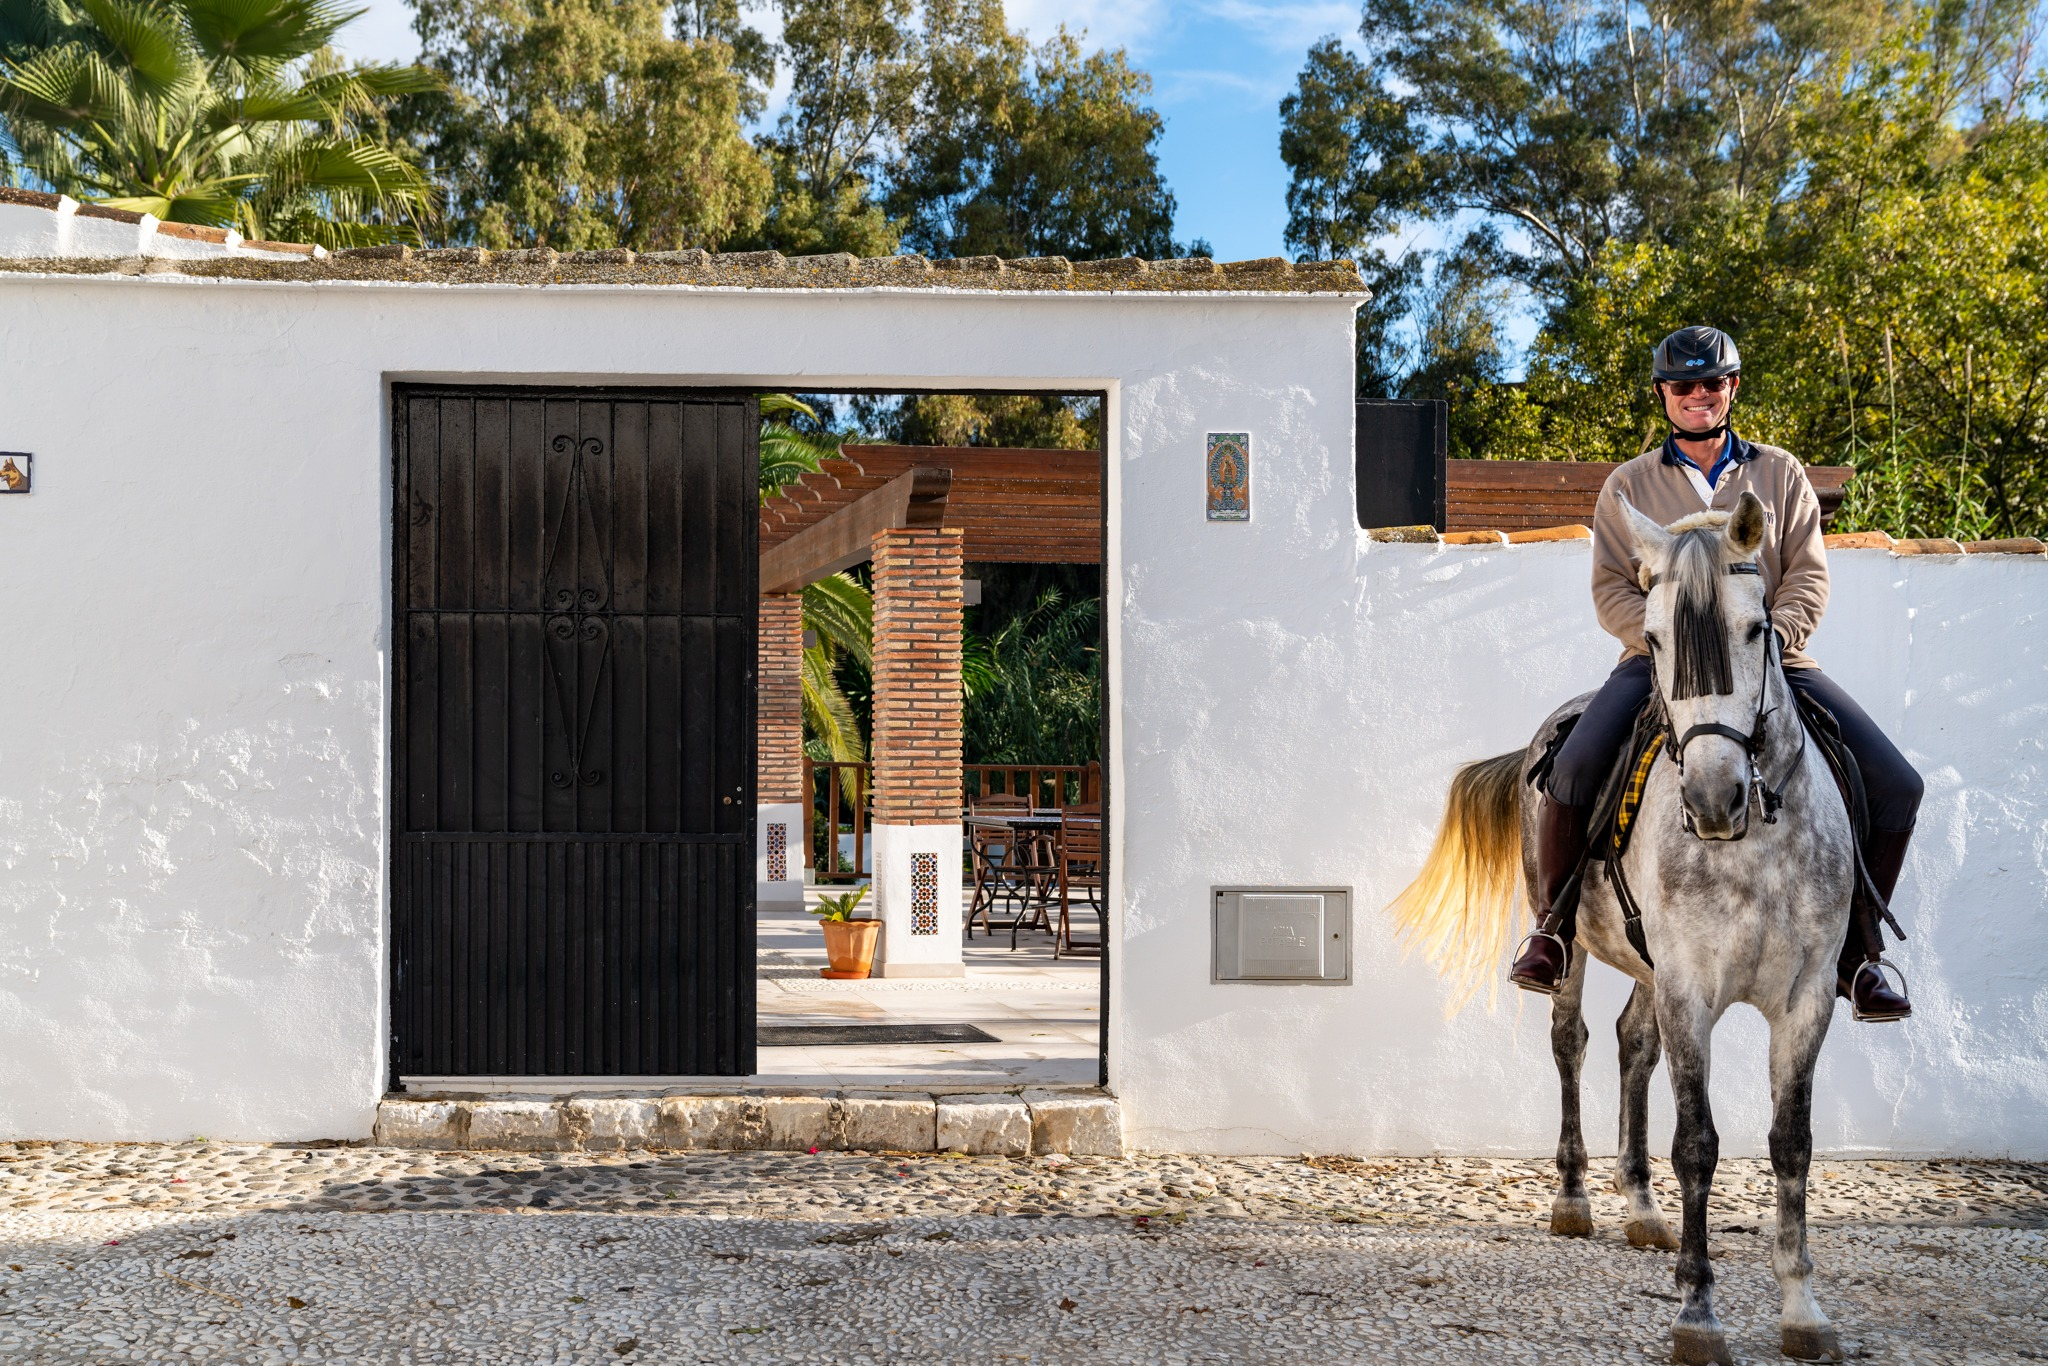 rider and horse on riding holiday in andalusia spain by globetrotting